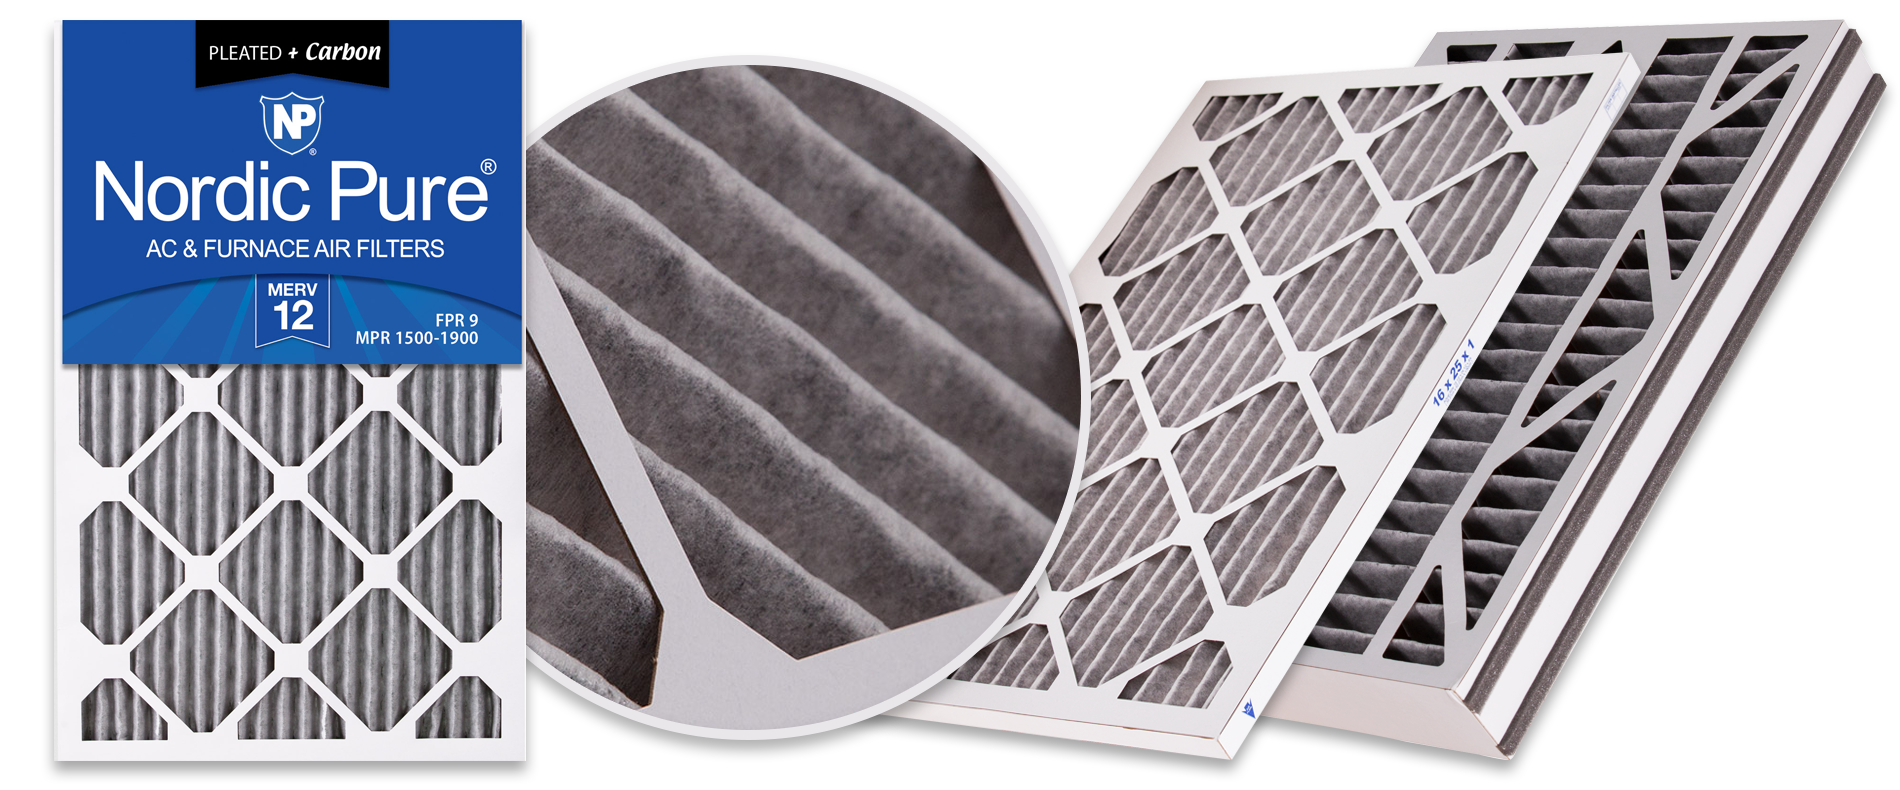 Nordic Pure Pleated Plus Carbon Air Filters - Best for Pet Owners